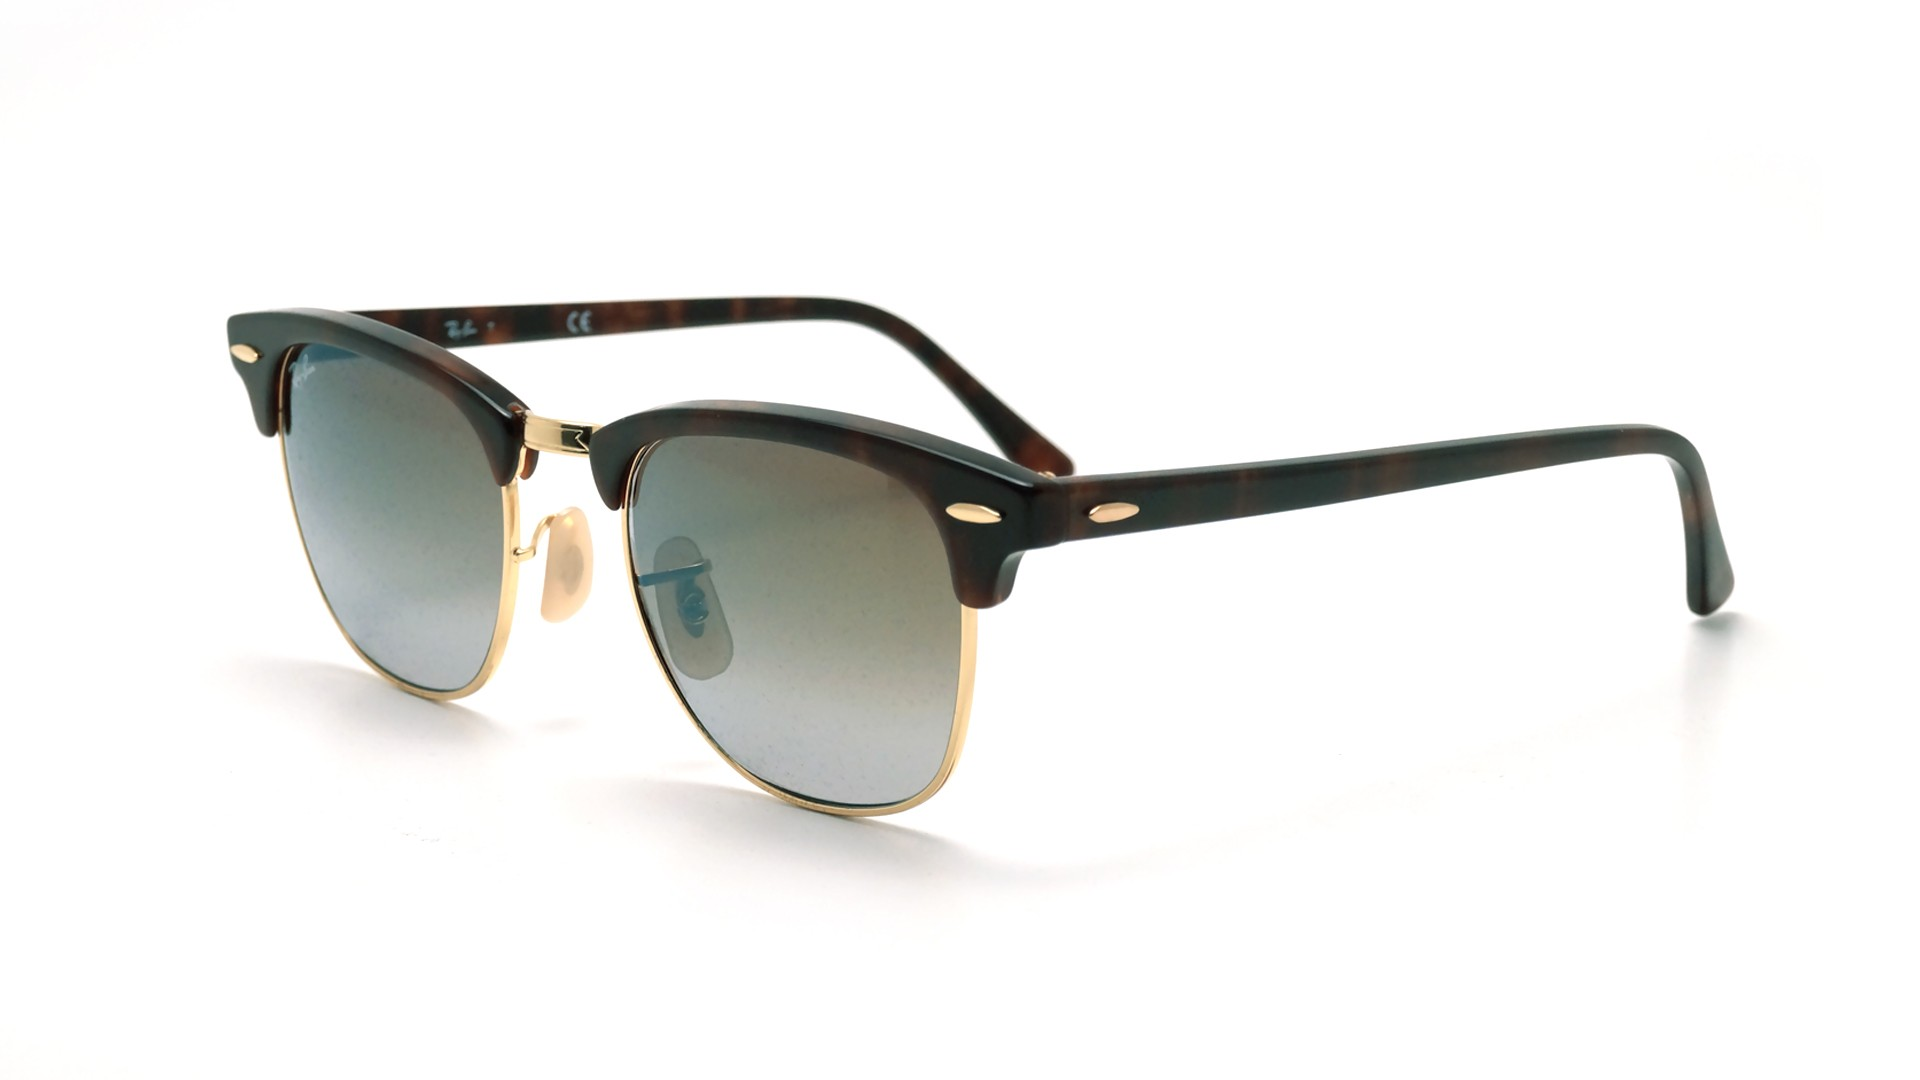 Ray-Ban Clubmaster Écaille RB3016 990 9J 49-21   Prix 109,90 €    Visiofactory 806b754d672f